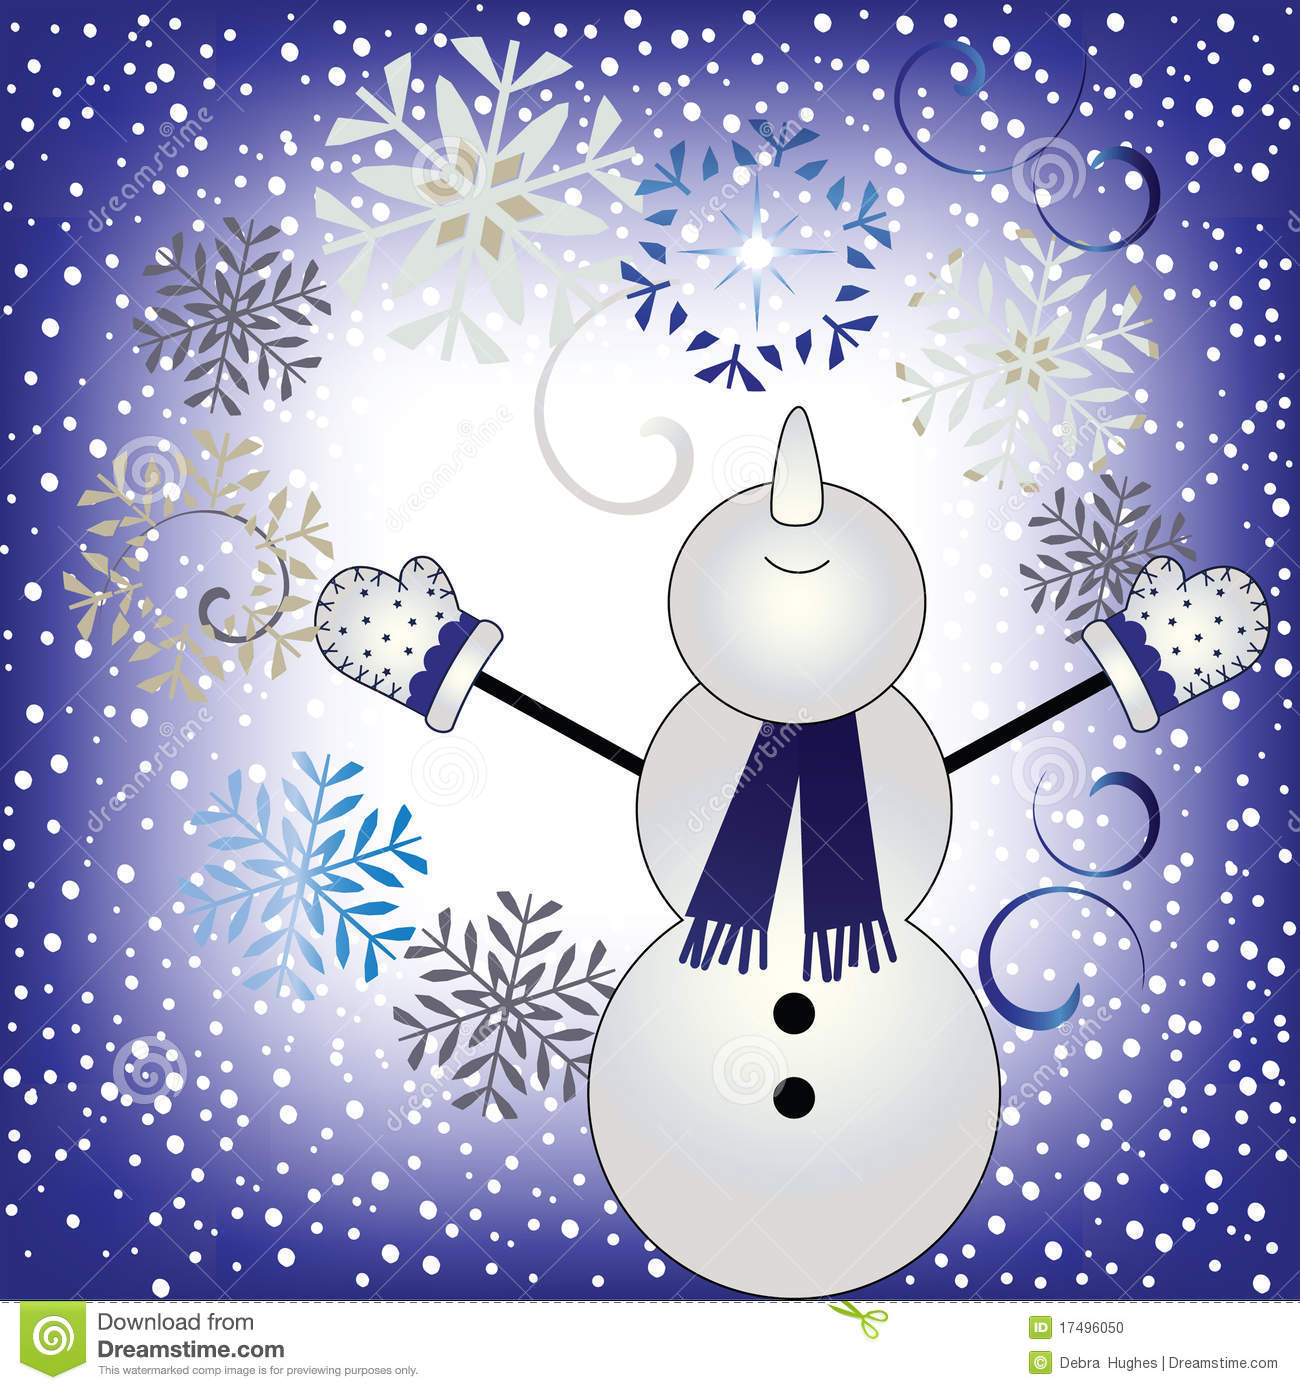 Snowing christmas decoration let it snow - Let It Snow Happy Snowman In Snowfall Stock Photo